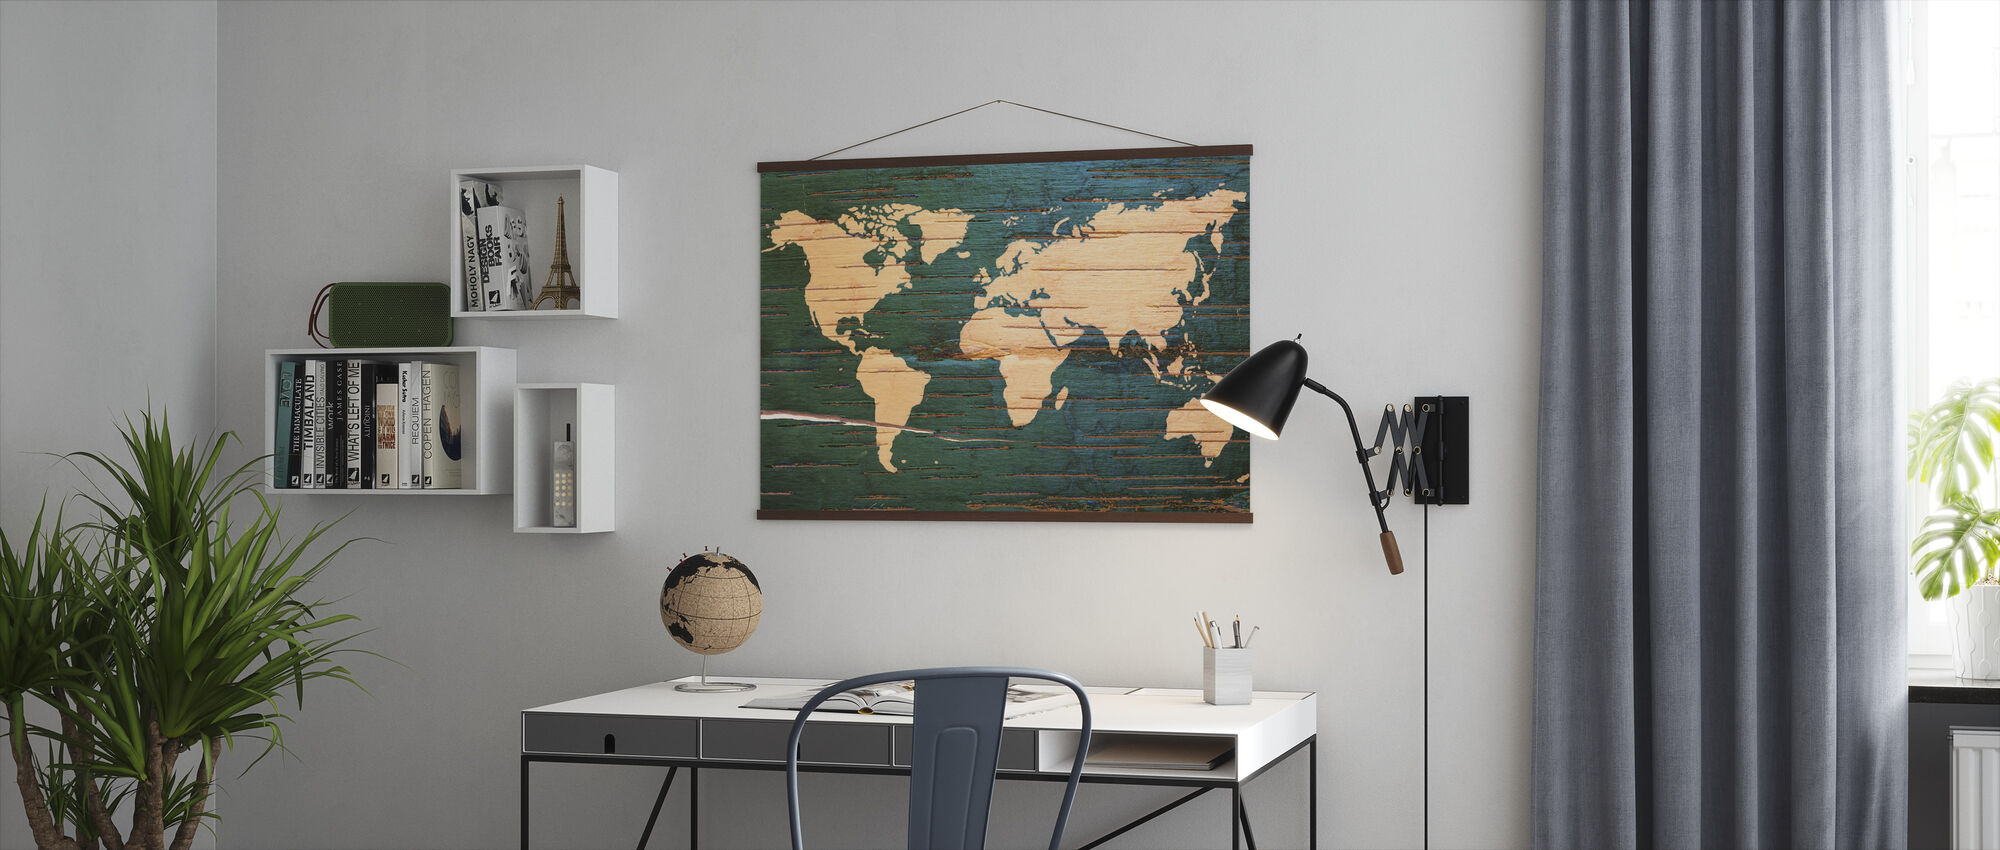 World Map on Wooden Wall - Poster - Office